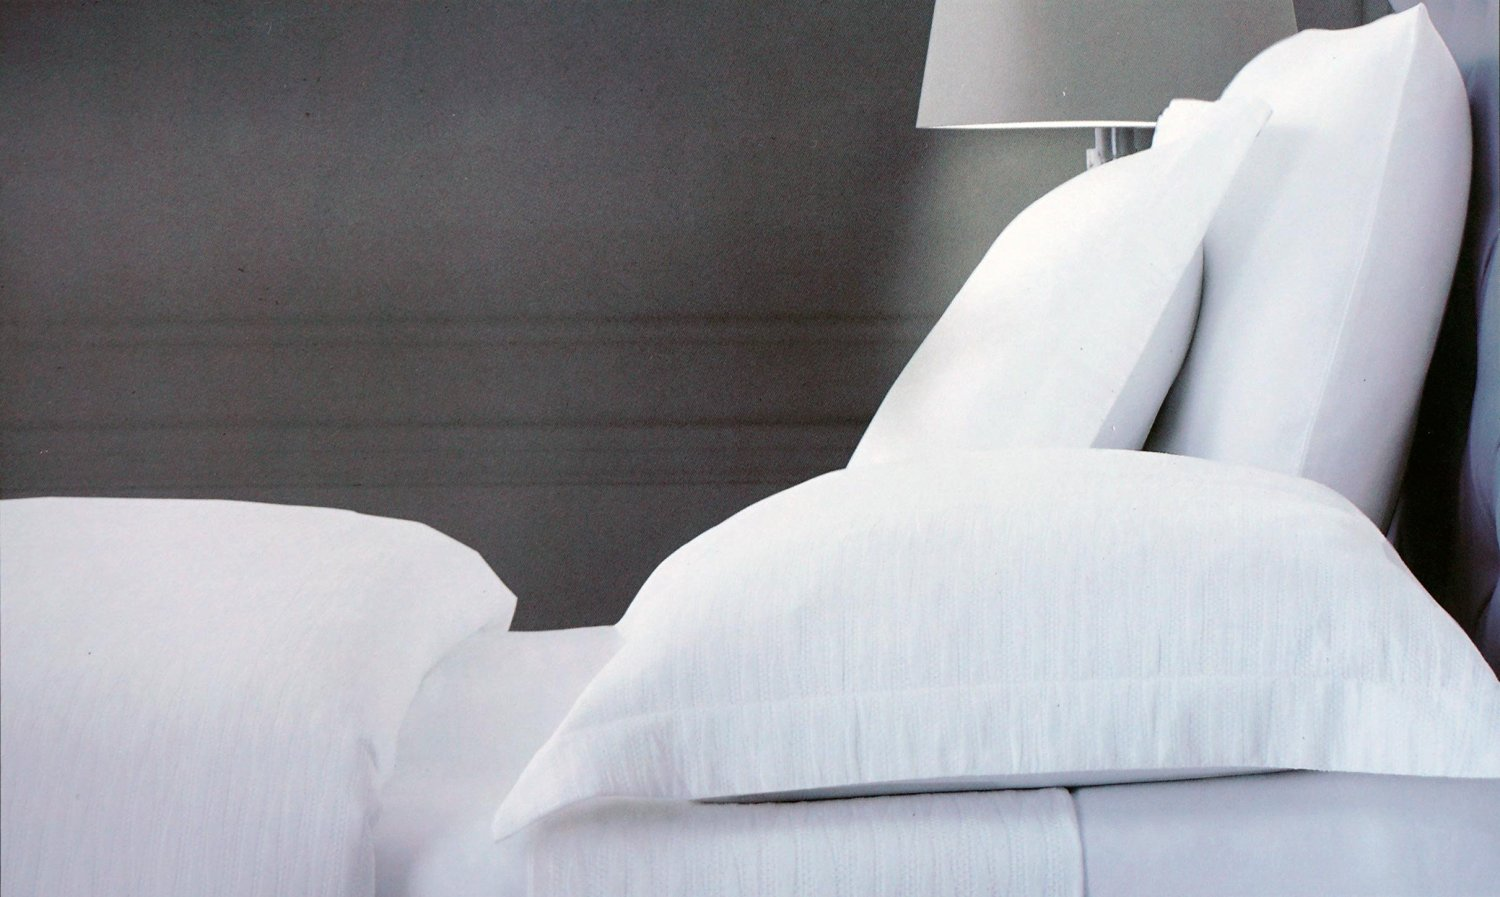 Nicole Miller Luxurious Designer Bedding 3 Piece Cotton Duvet Cover Set Solid White With A Textured